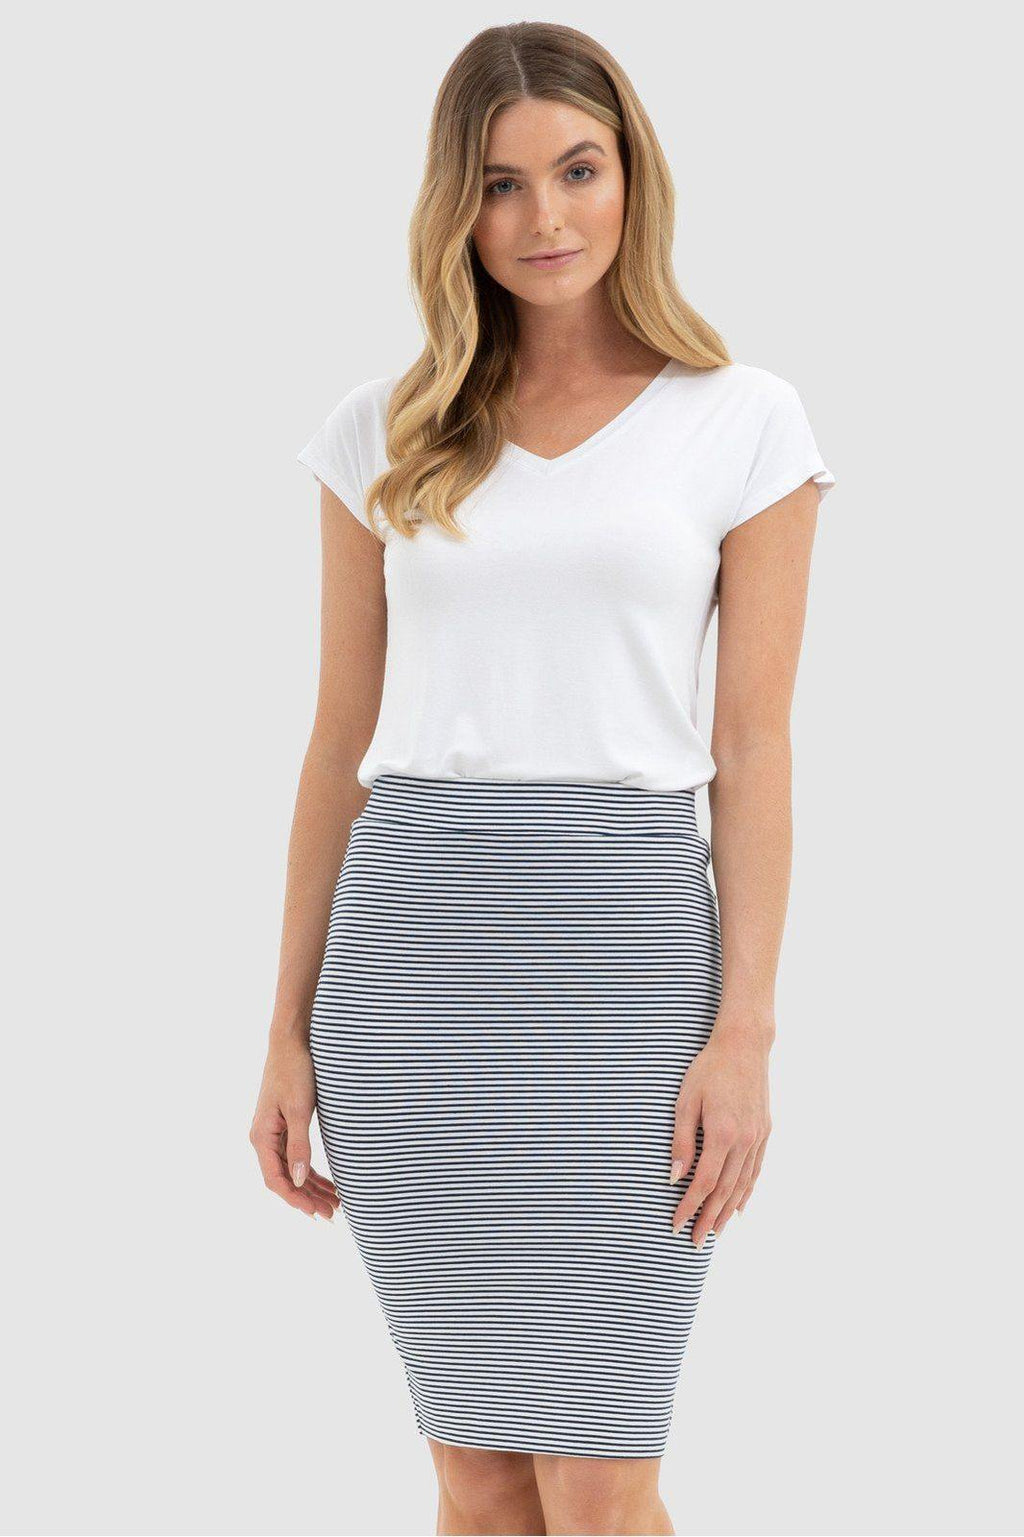 Bamboo Body Double Layer Tube Skirt - White & Navy Stripe | Buy Online at Weekends